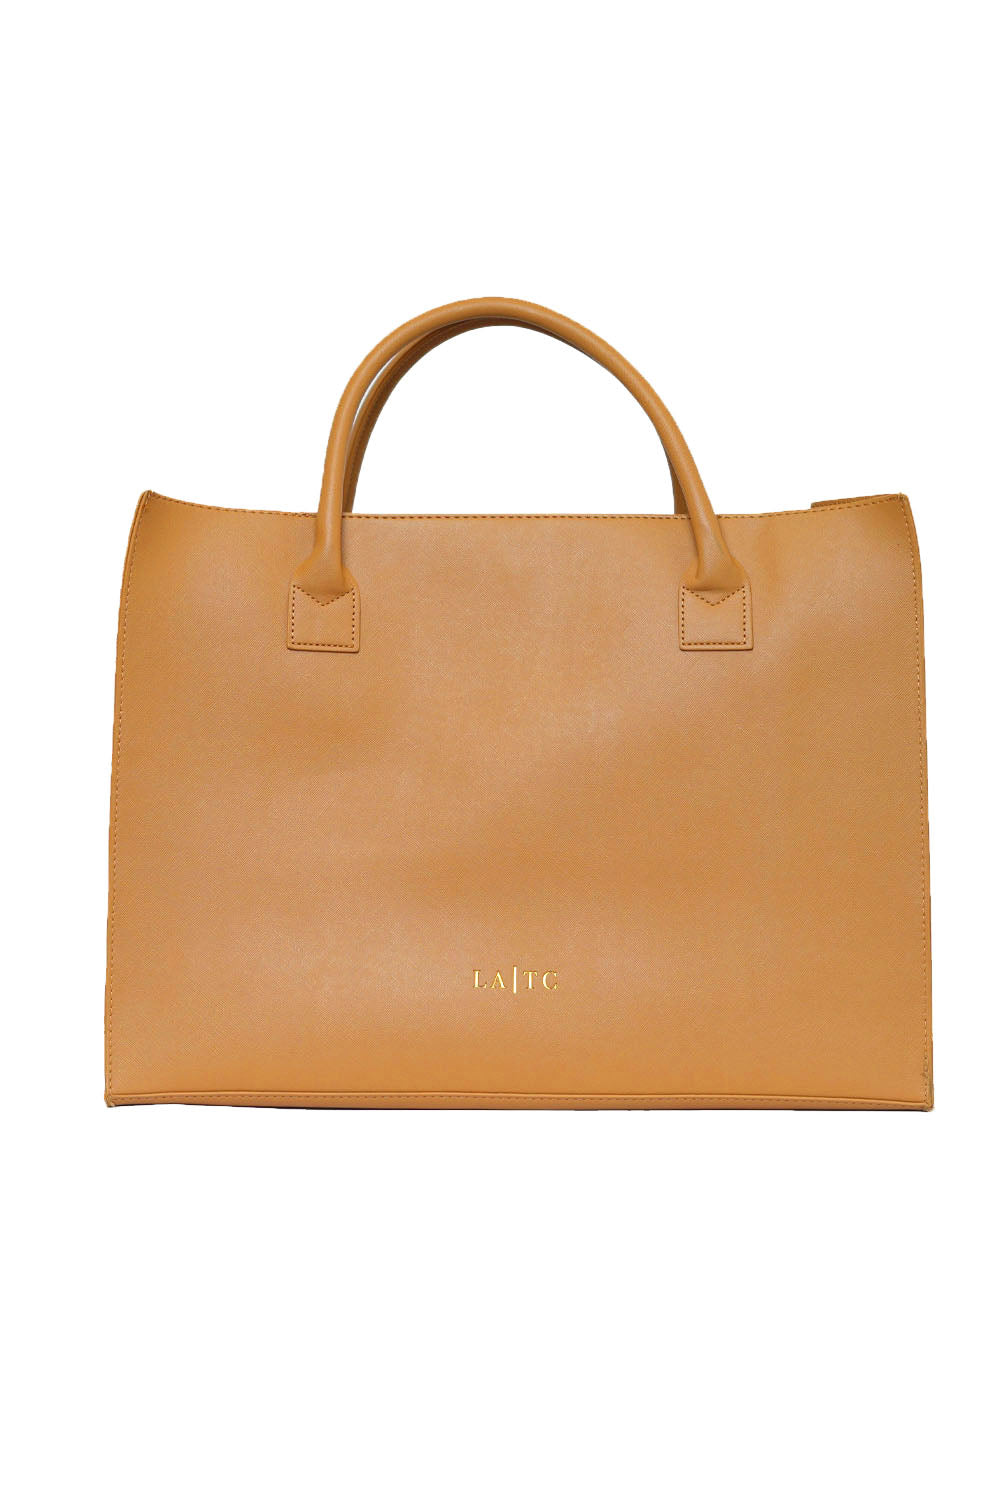 MODERN VEGAN TOTE - Low Key Boujee (Tan)